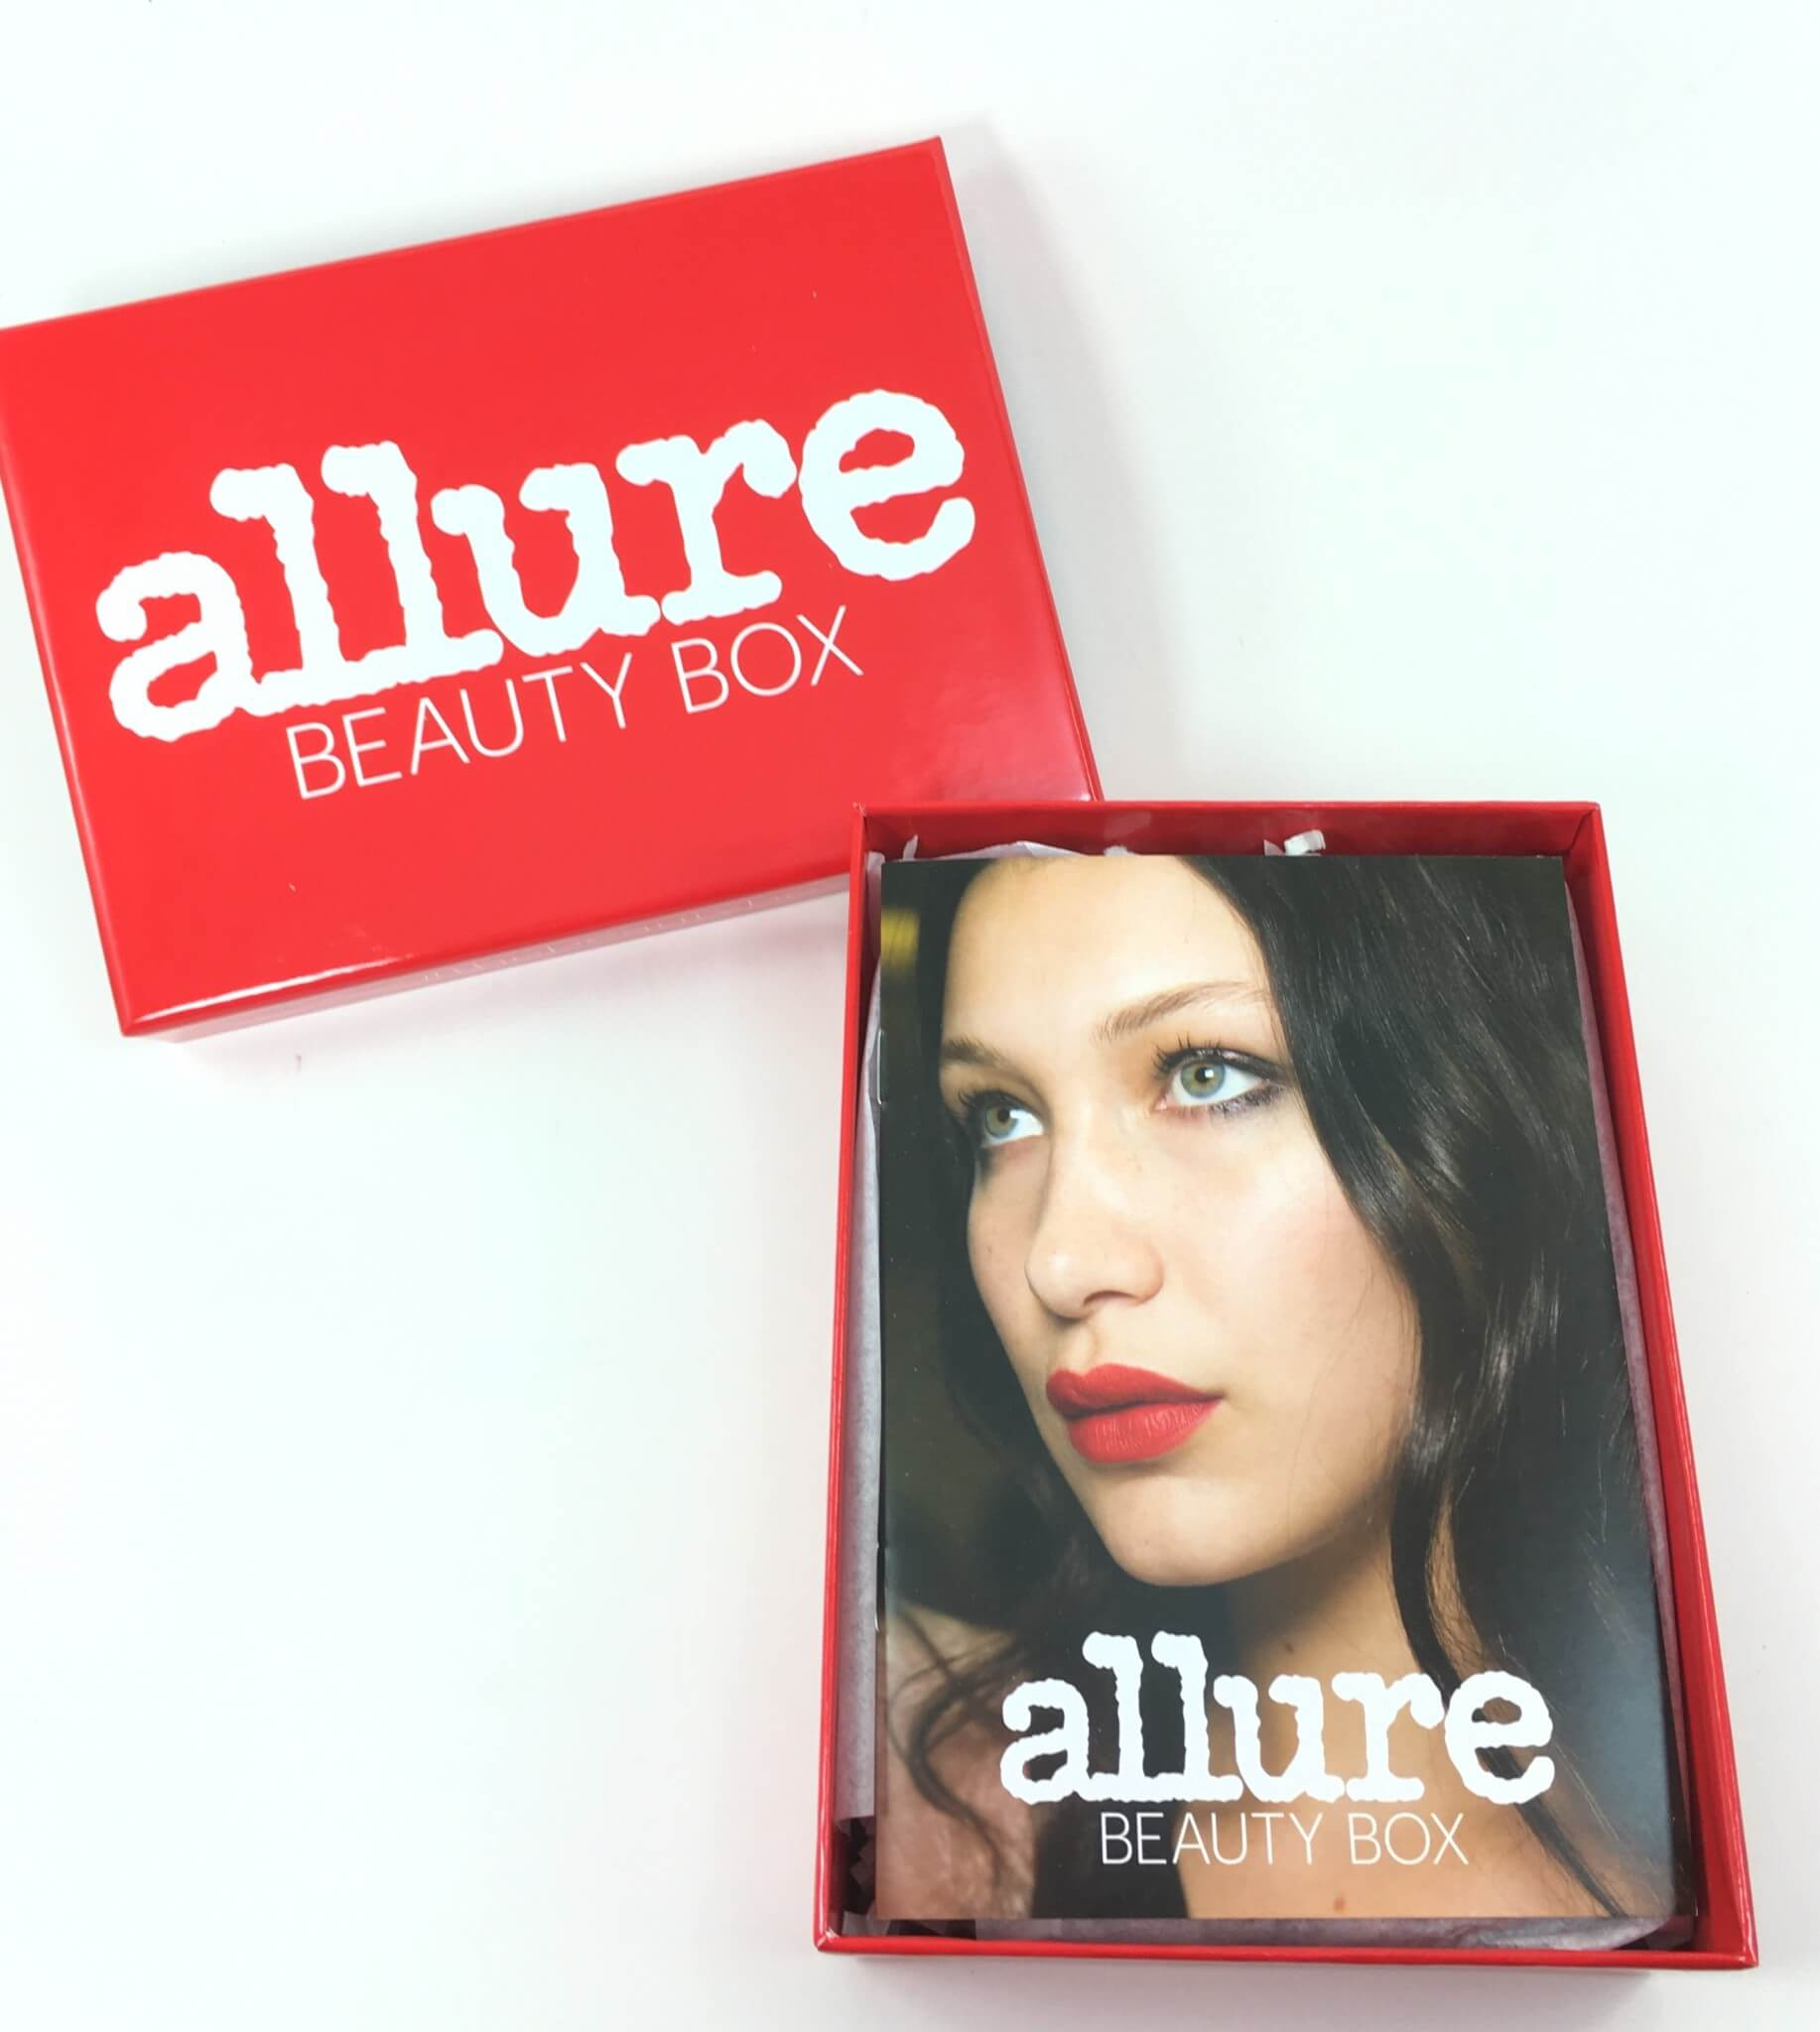 Allure Beauty Box September 2016 Subscription Box Review